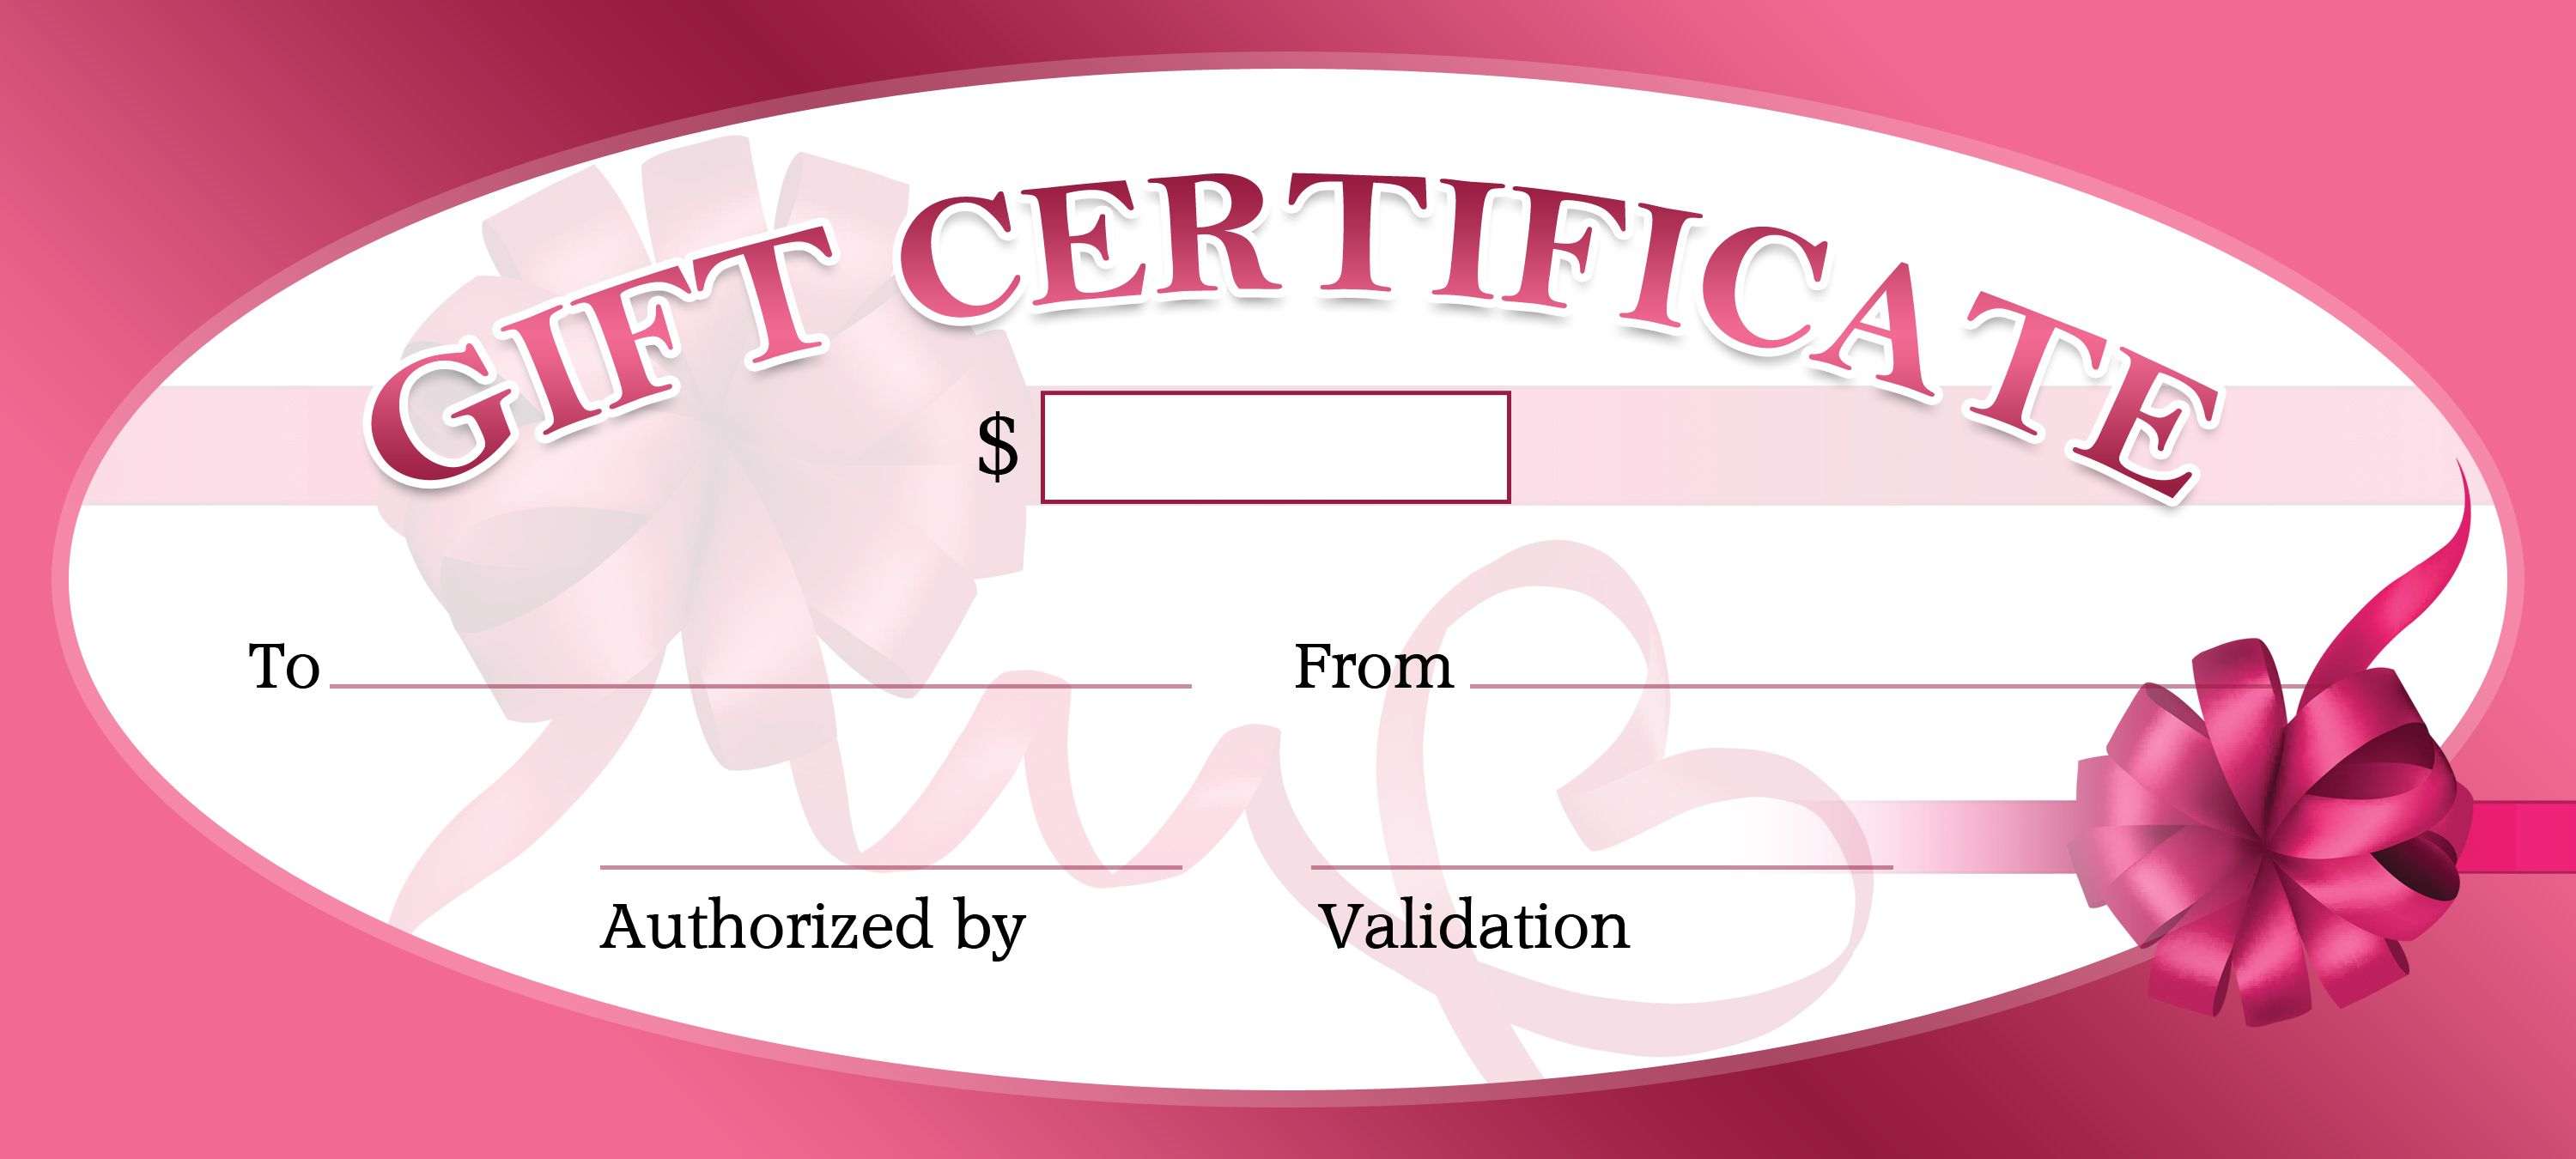 Gift certificate template for ms word download at http gift certificate template for ms word download at httpcertificatesinn 1betcityfo Choice Image